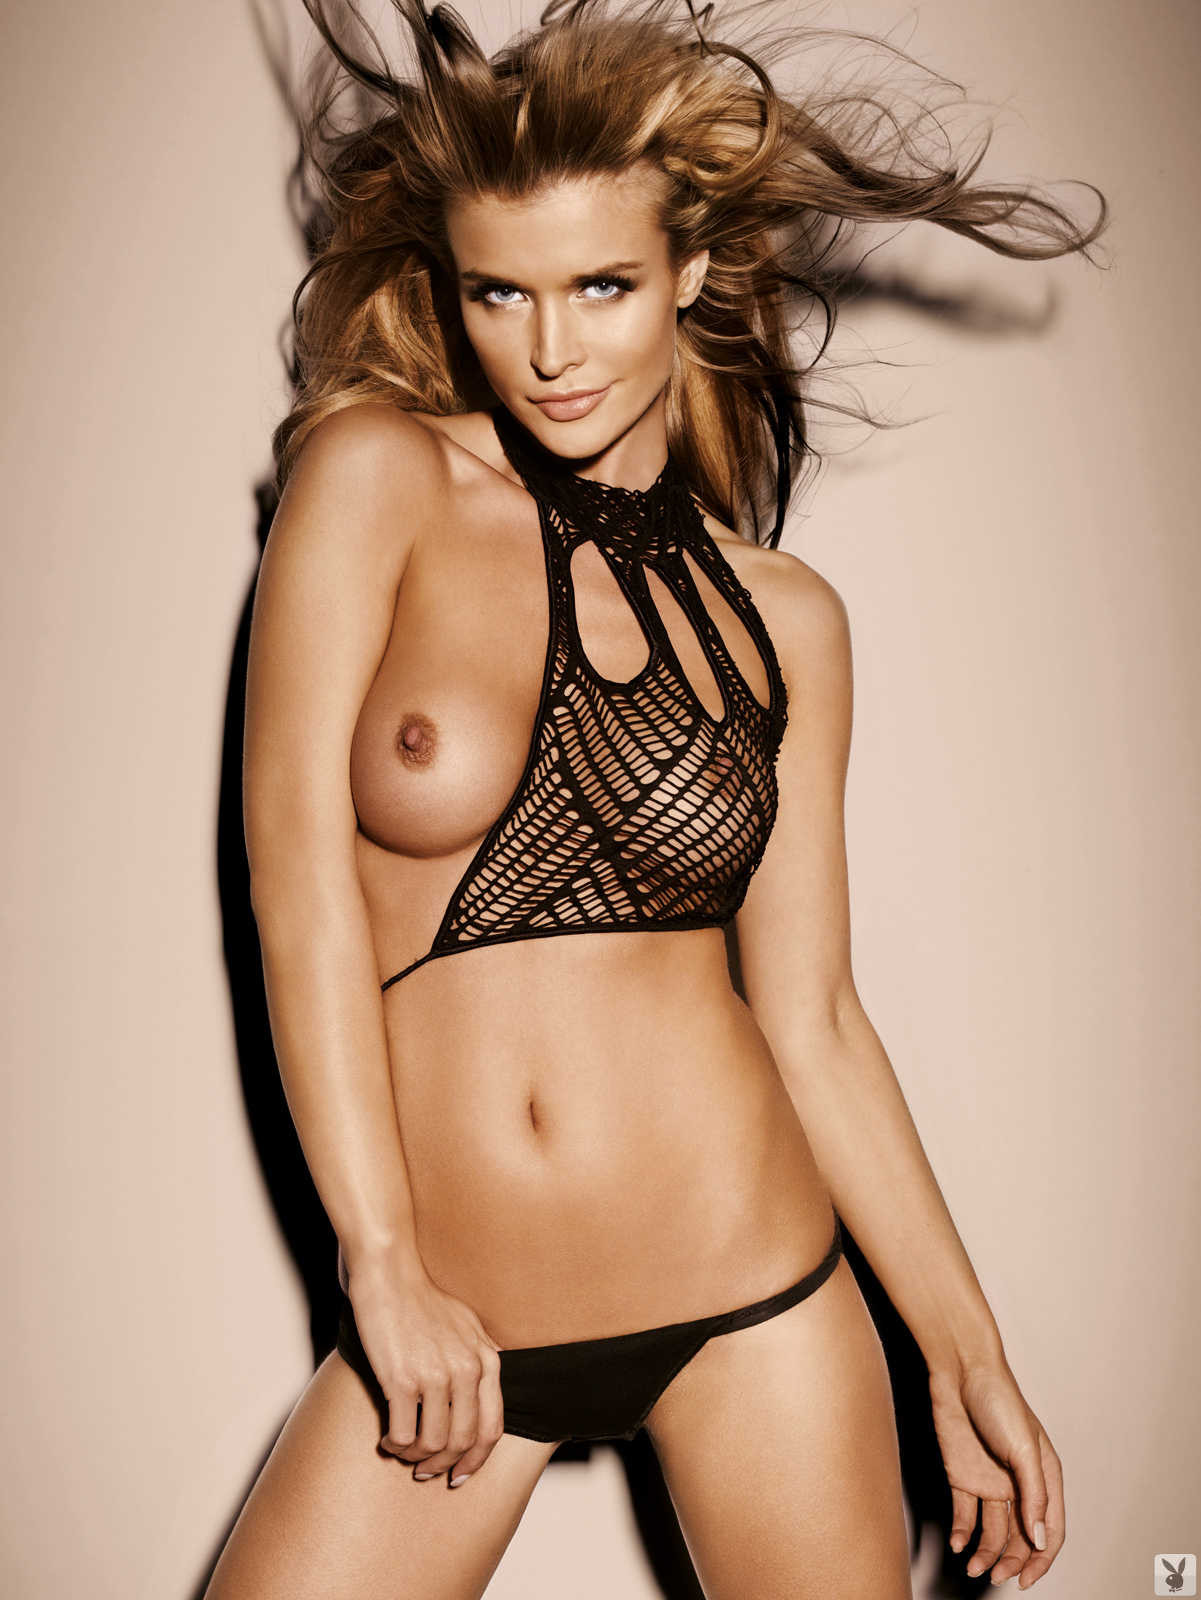 Hot pic of naked big boobed supermodel